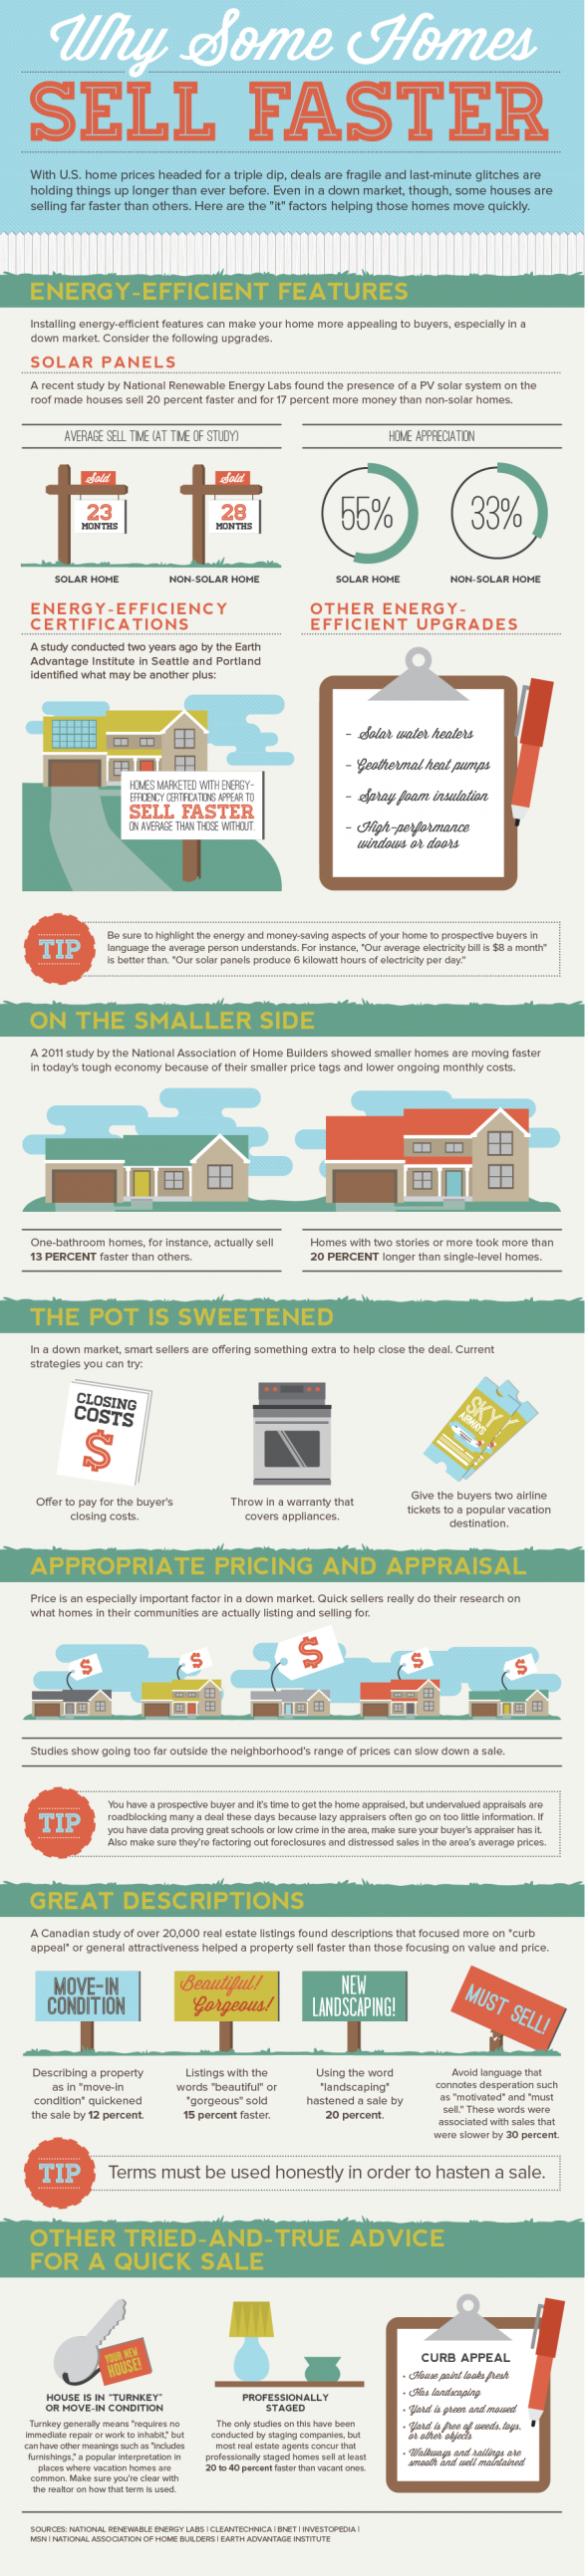 youralbuquerquehomeyourguidetomakinggreatrealestate 4efb2c1ce0970 w587 Infographic Fun: Why Some Homes Sell Faster